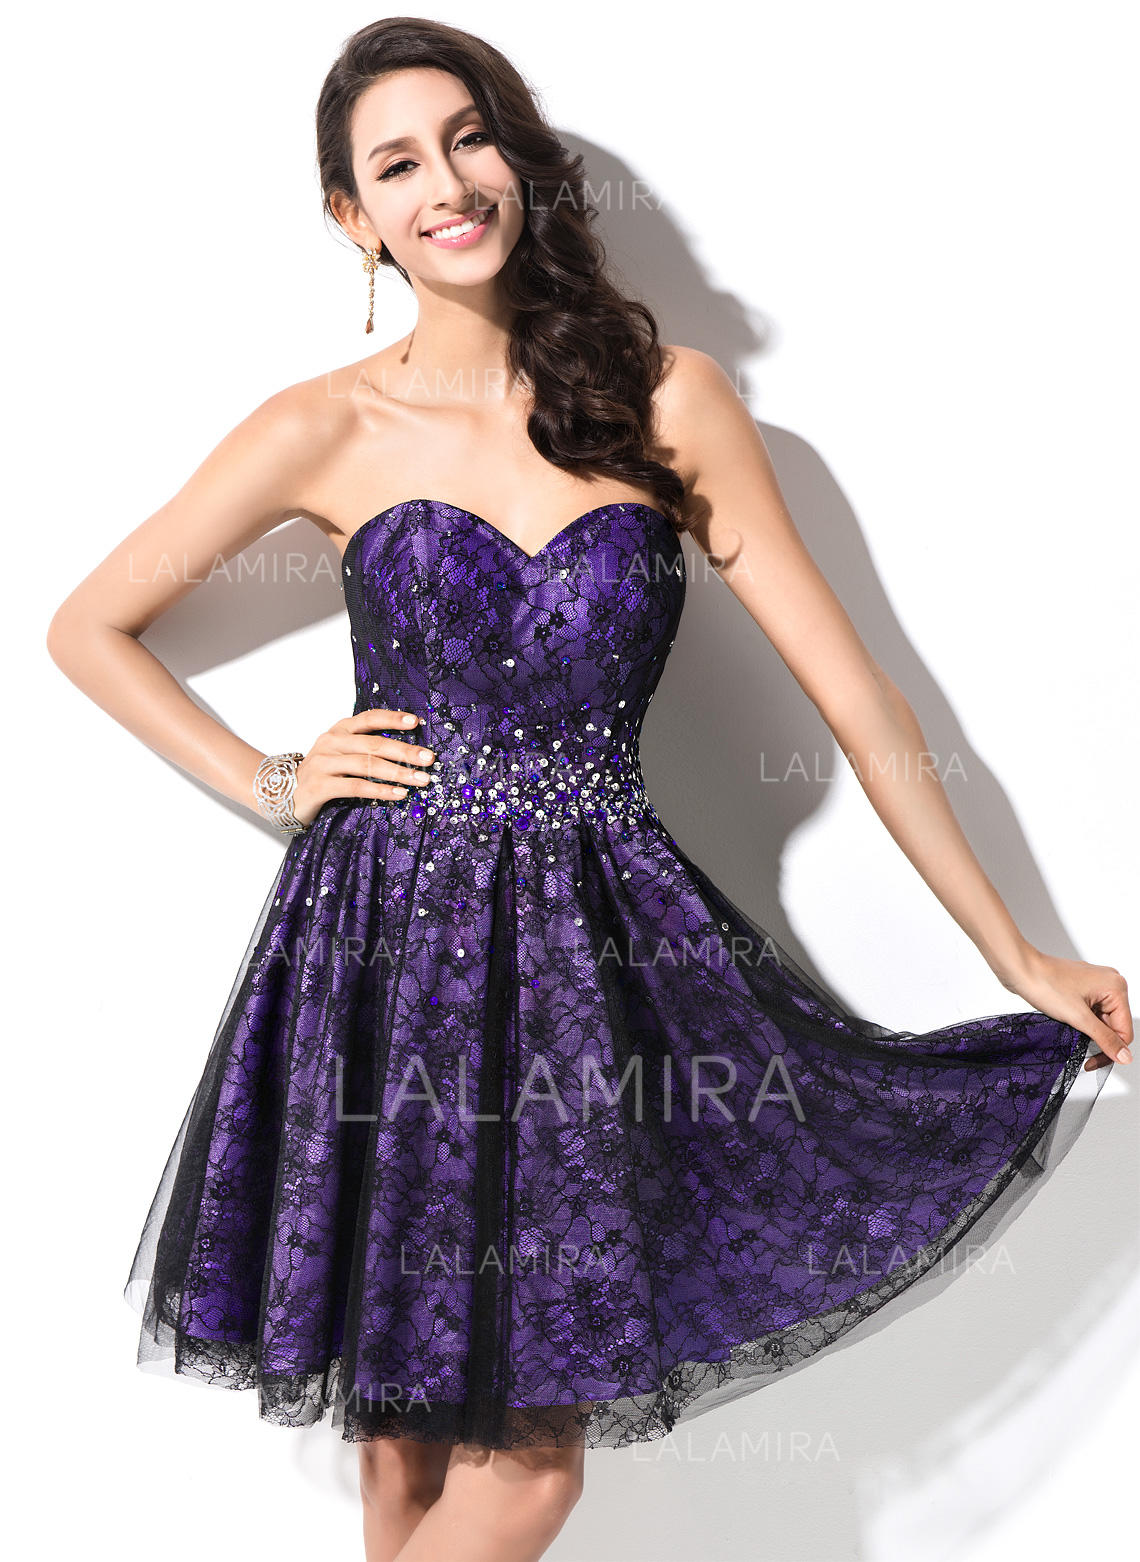 841f7784e2a Modern Taffeta Lace Homecoming Dresses A-Line/Princess Short/Mini Sweetheart  Sleeveless (. Loading zoom